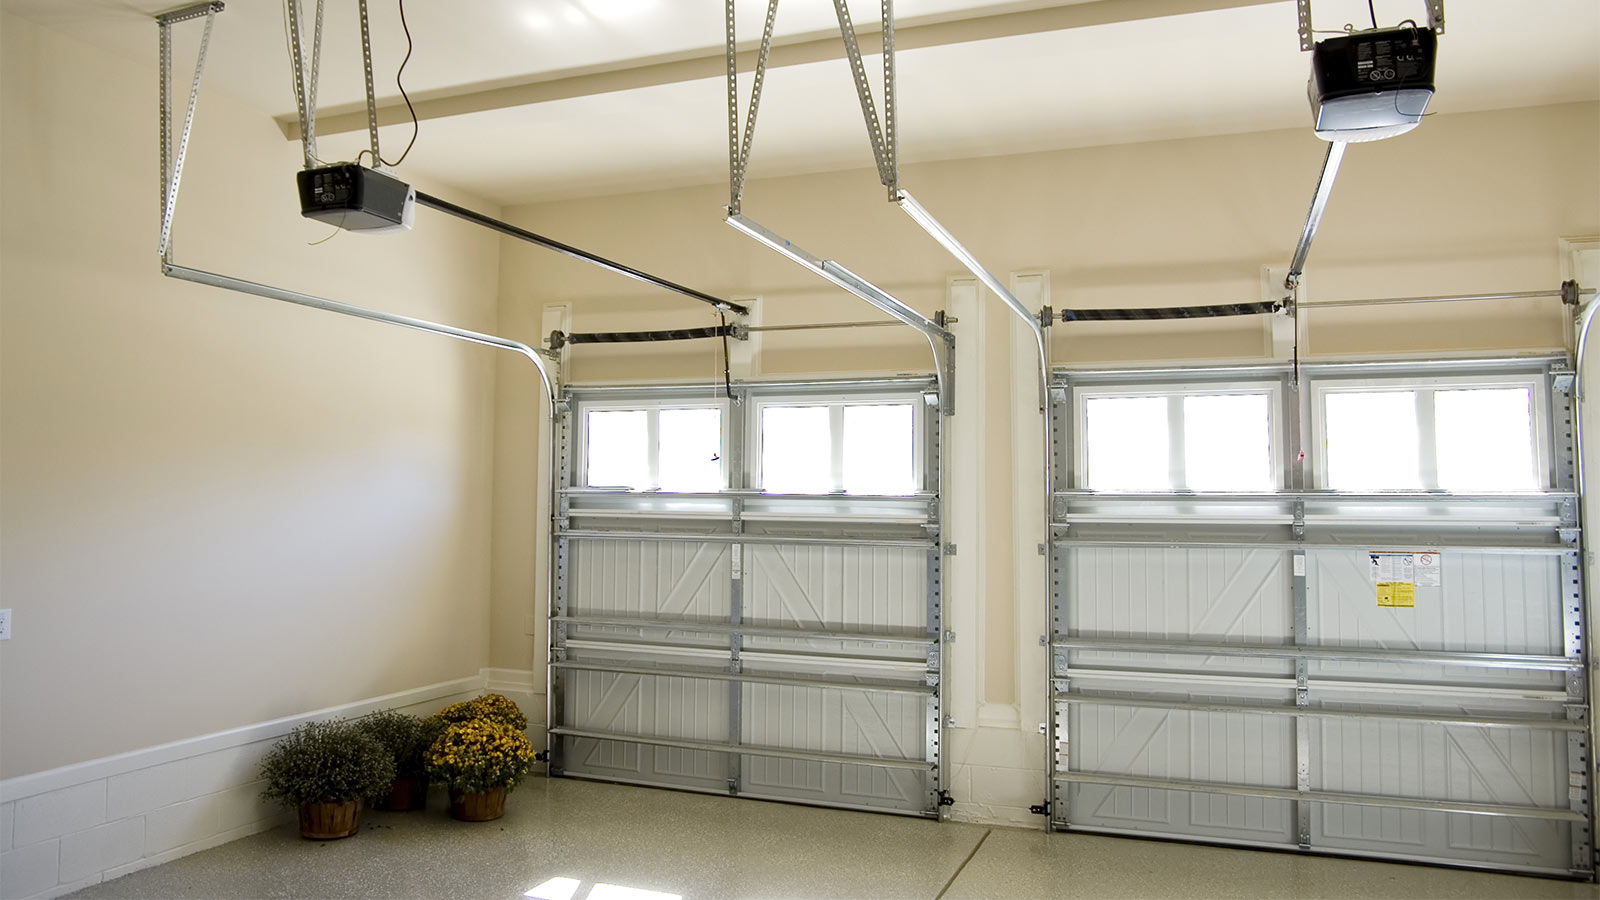 Sectional Garage Doors from Up and Over Doors Southend suppliers.